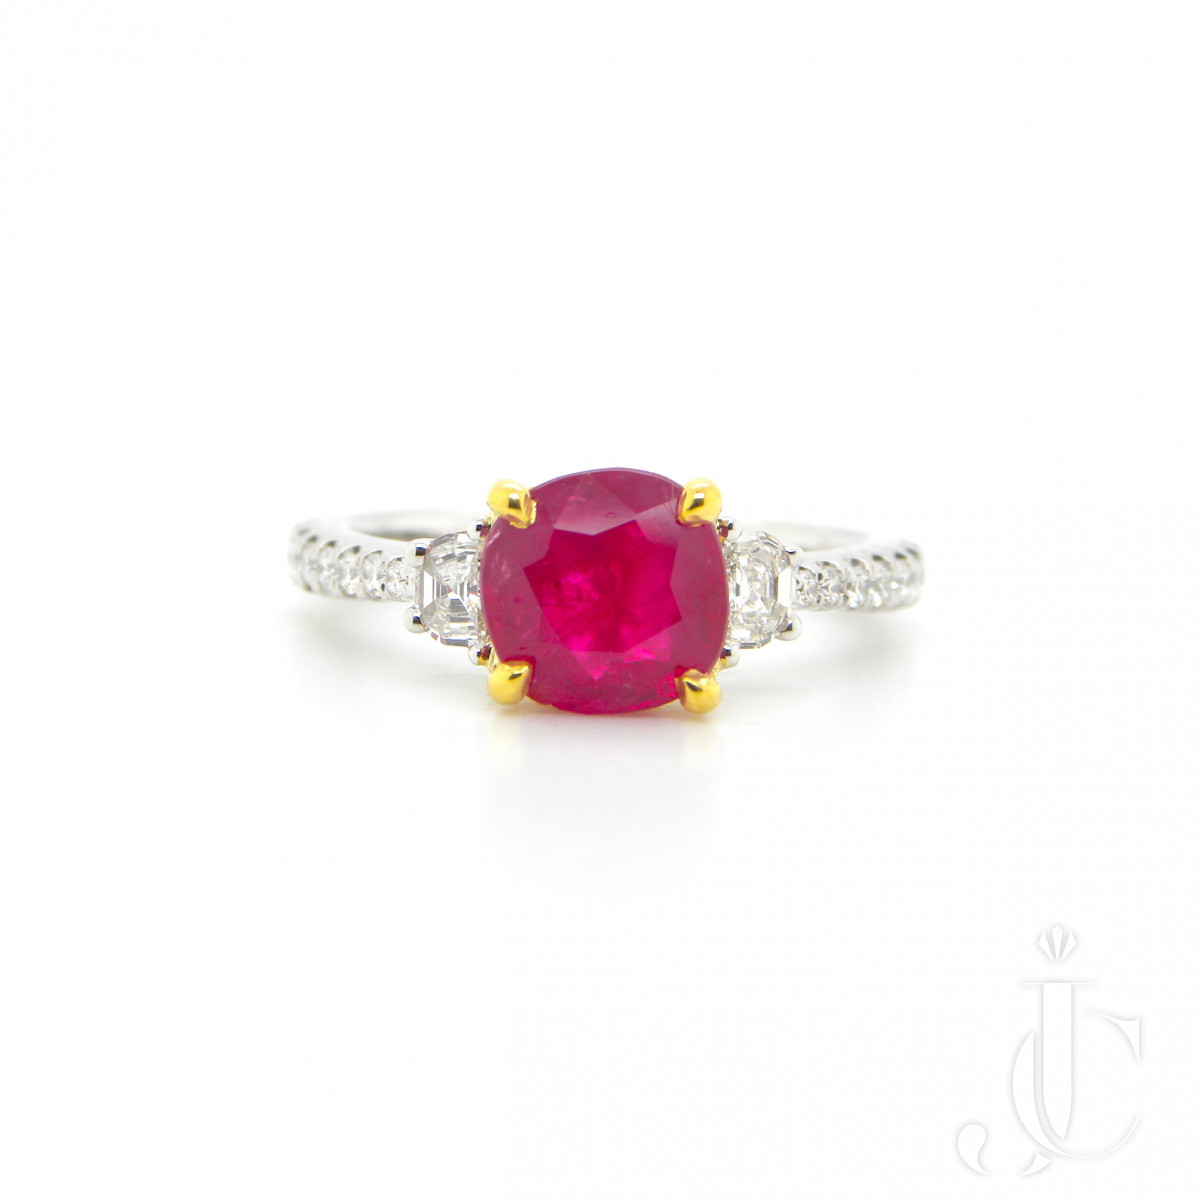 1.93 Carat GIA Certified Unheated Vivid Red Burmese Ruby and White Diamond Ring